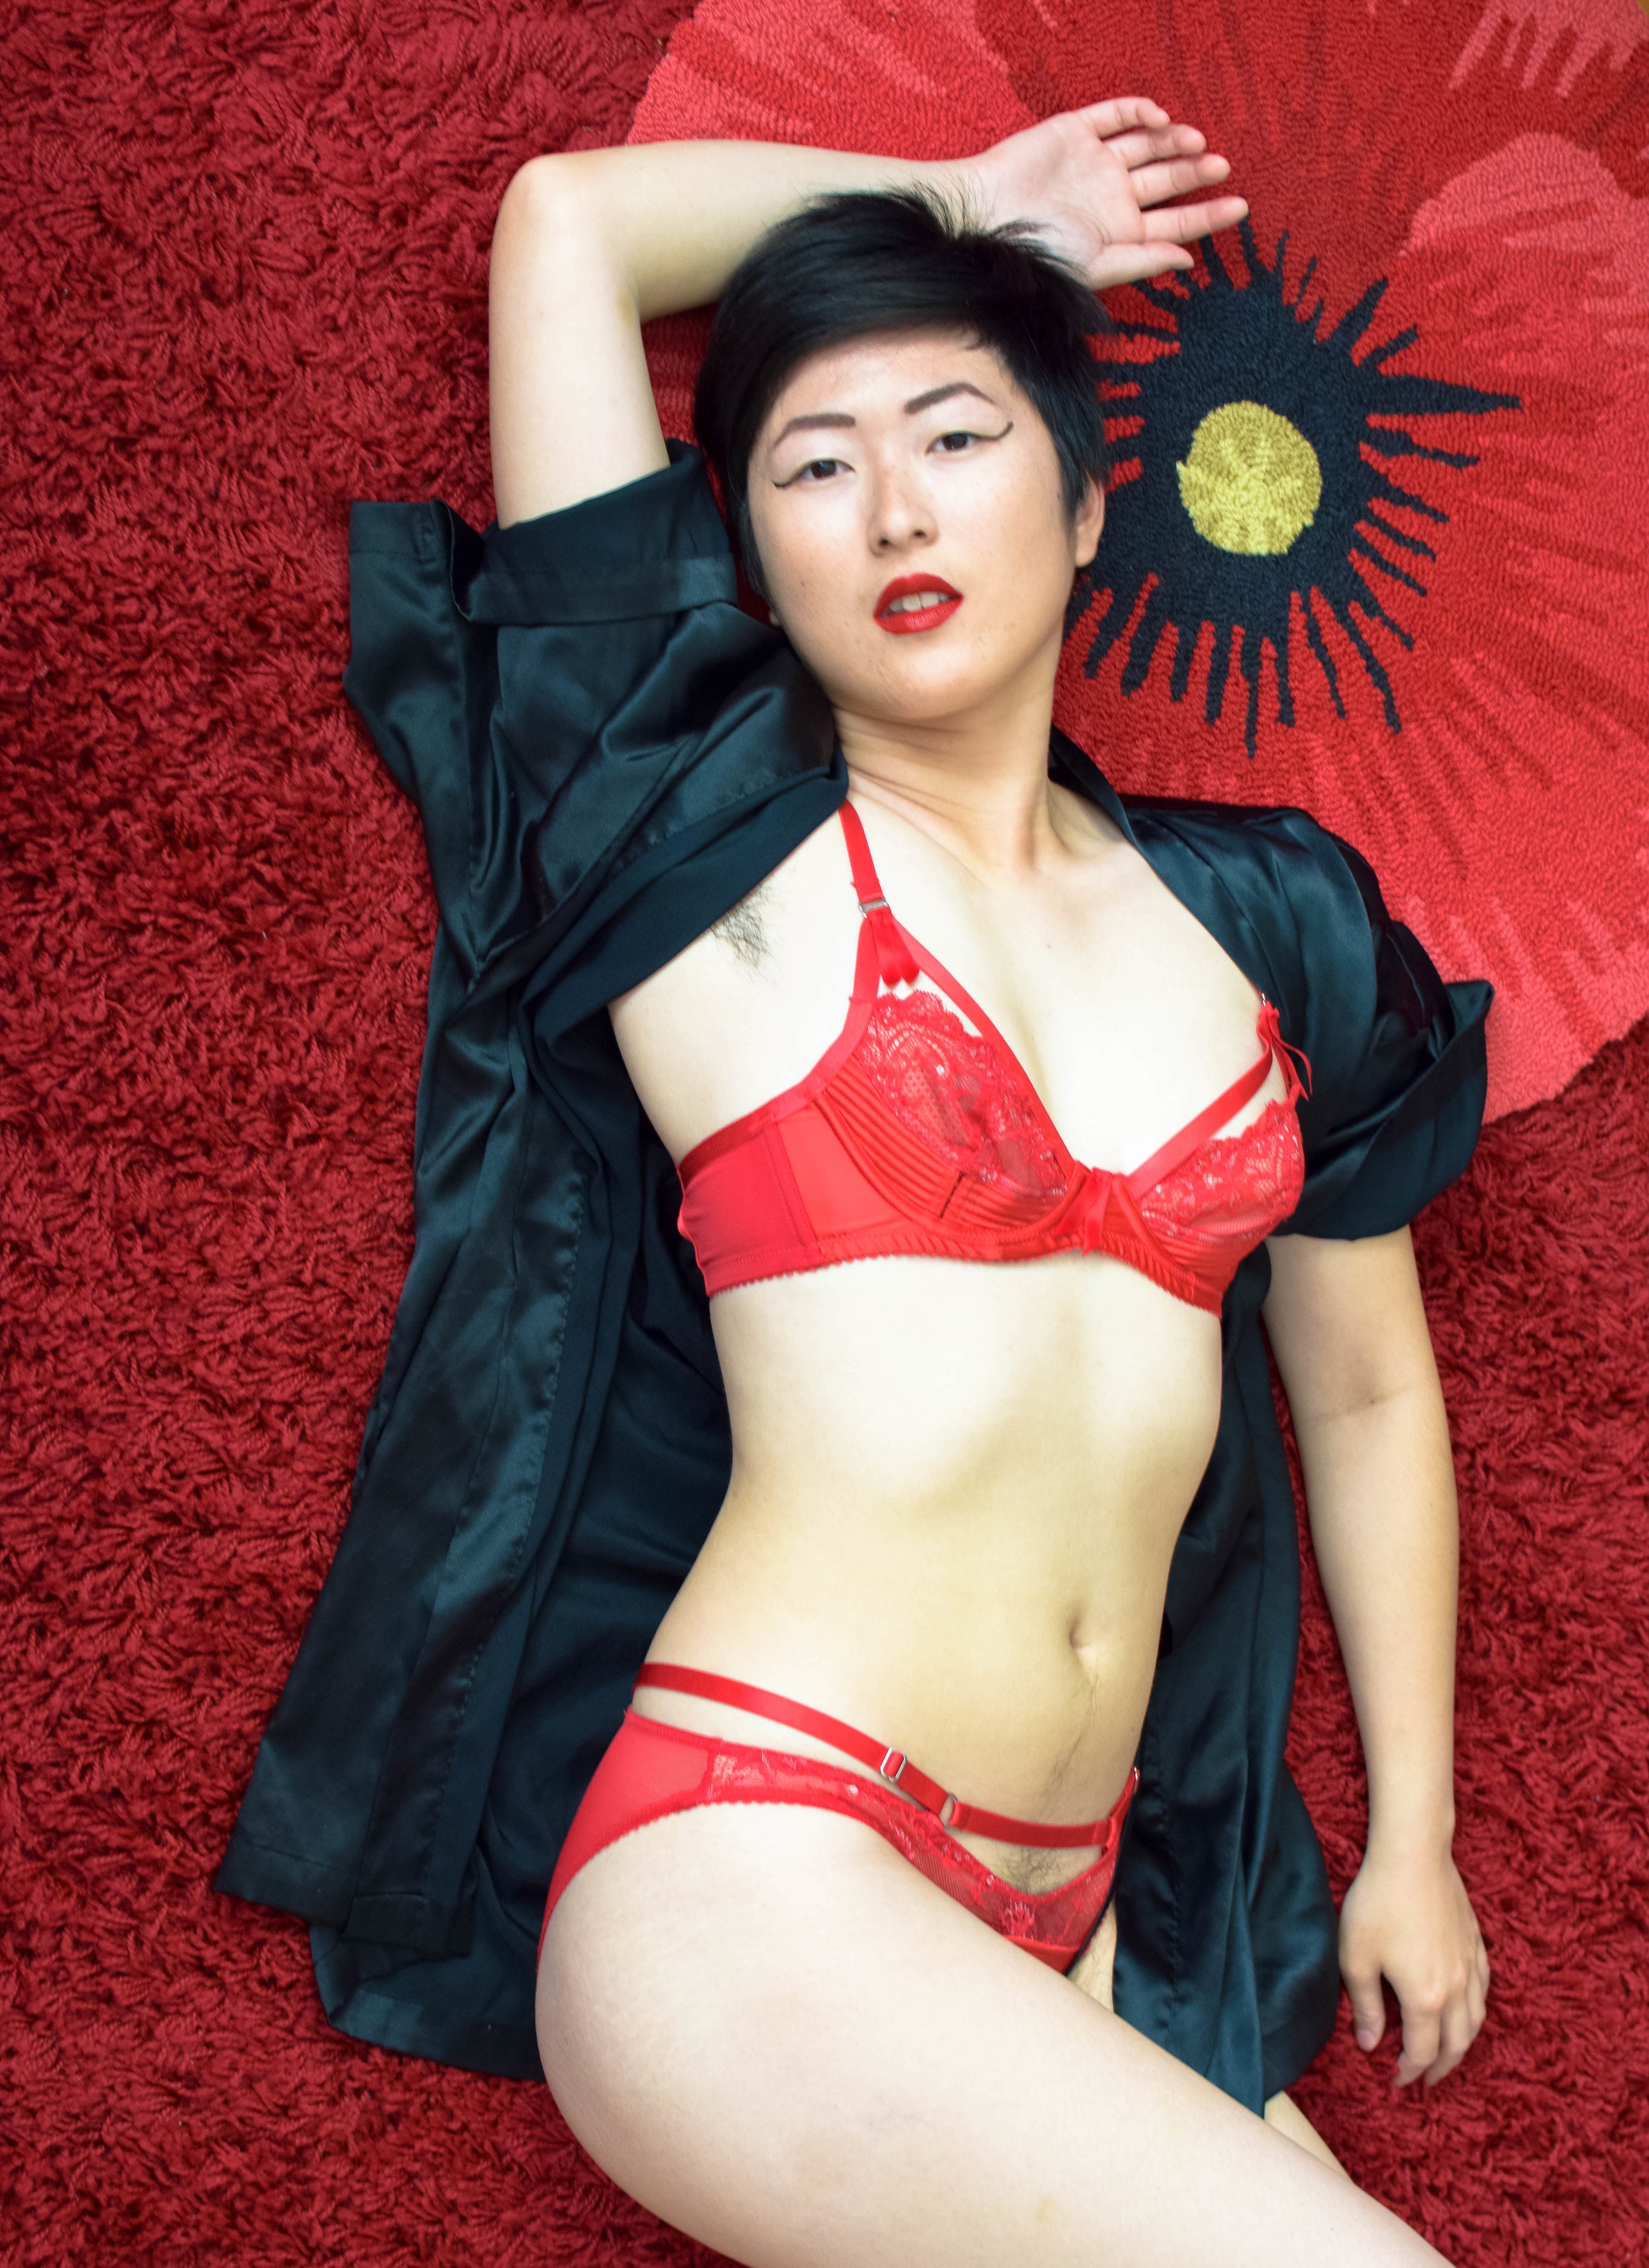 Photo by  Lucy Fleur . Bra and underwear by Dita Von Teese.   Image description: A Chinese-American woman with short hair reclines on a red shag rug and looks directly at the camera. She is wearing a strappy red bra and underwear set and a black robe. Behind her head is another rug in the shape of a large red flower.